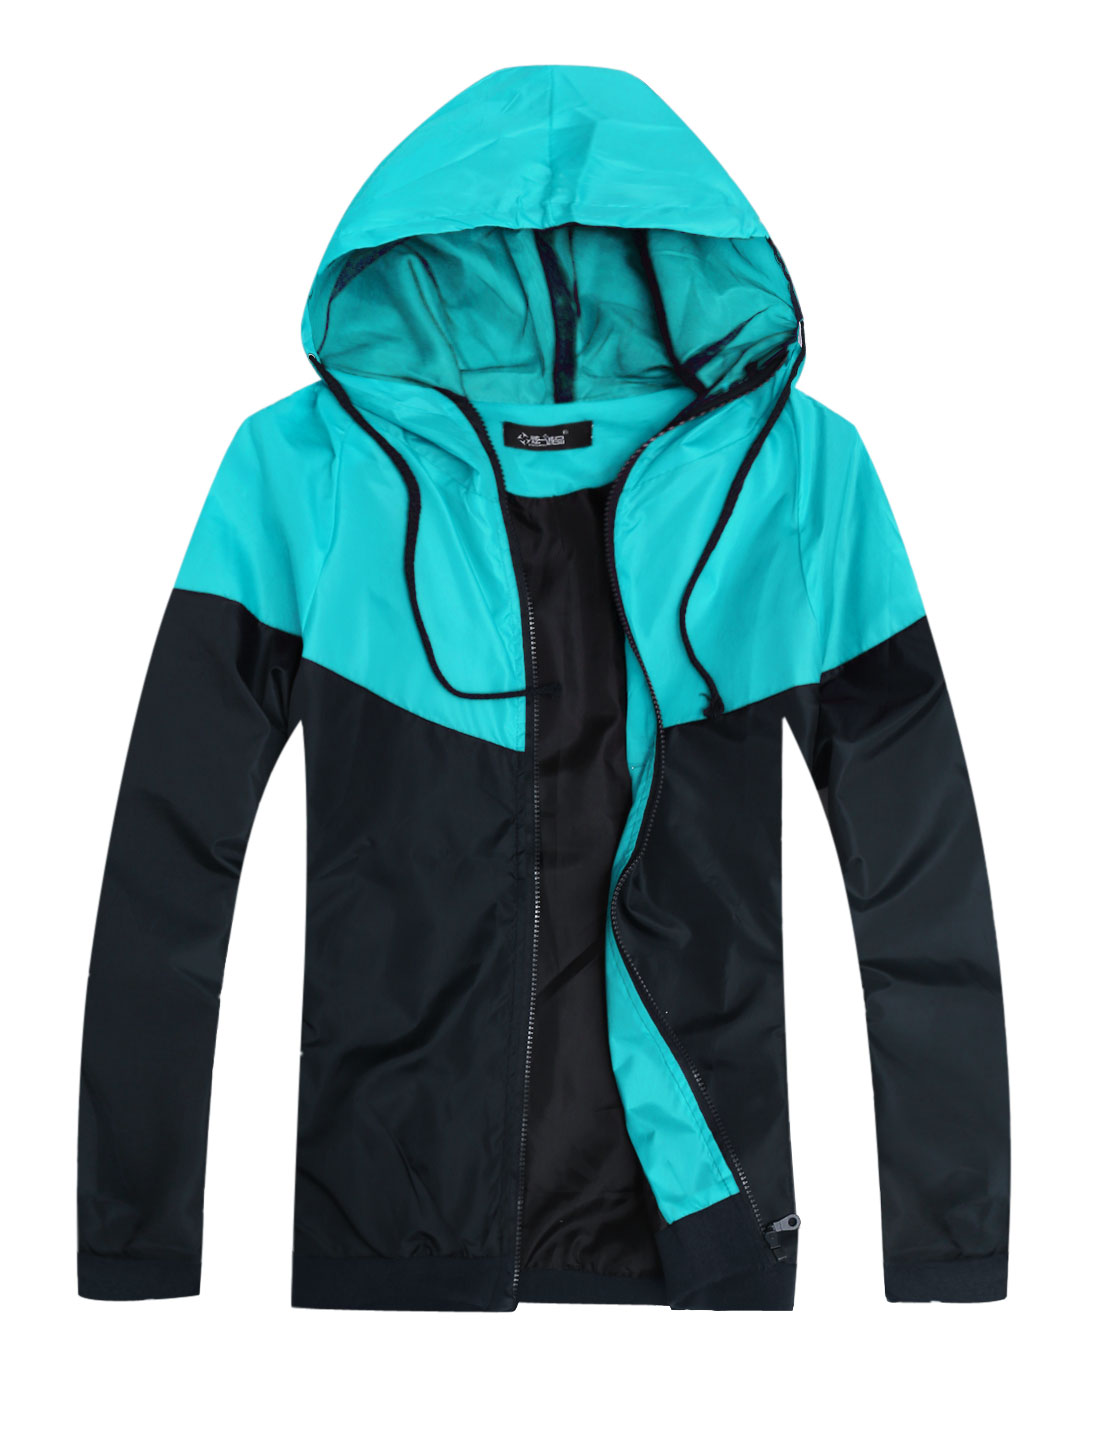 Men Hooded Zip Fly Panel Design Colorblock Basic Jacket Sky Blue Navy Blue S